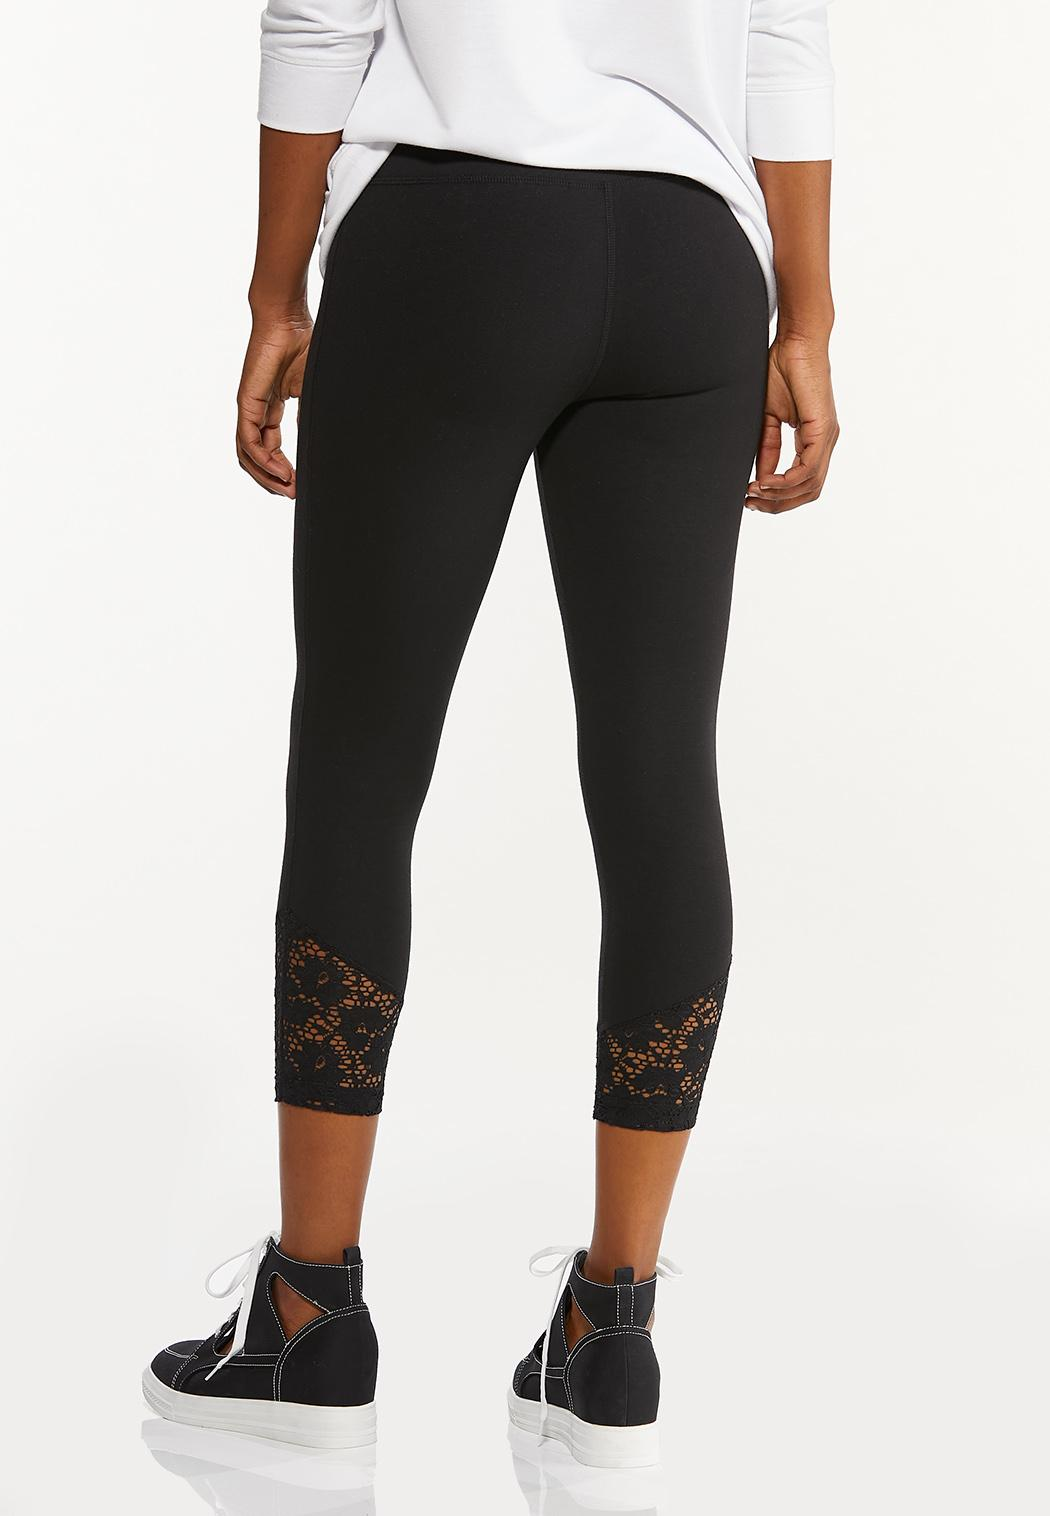 Cropped Lace Hem Leggings (Item #44548232)